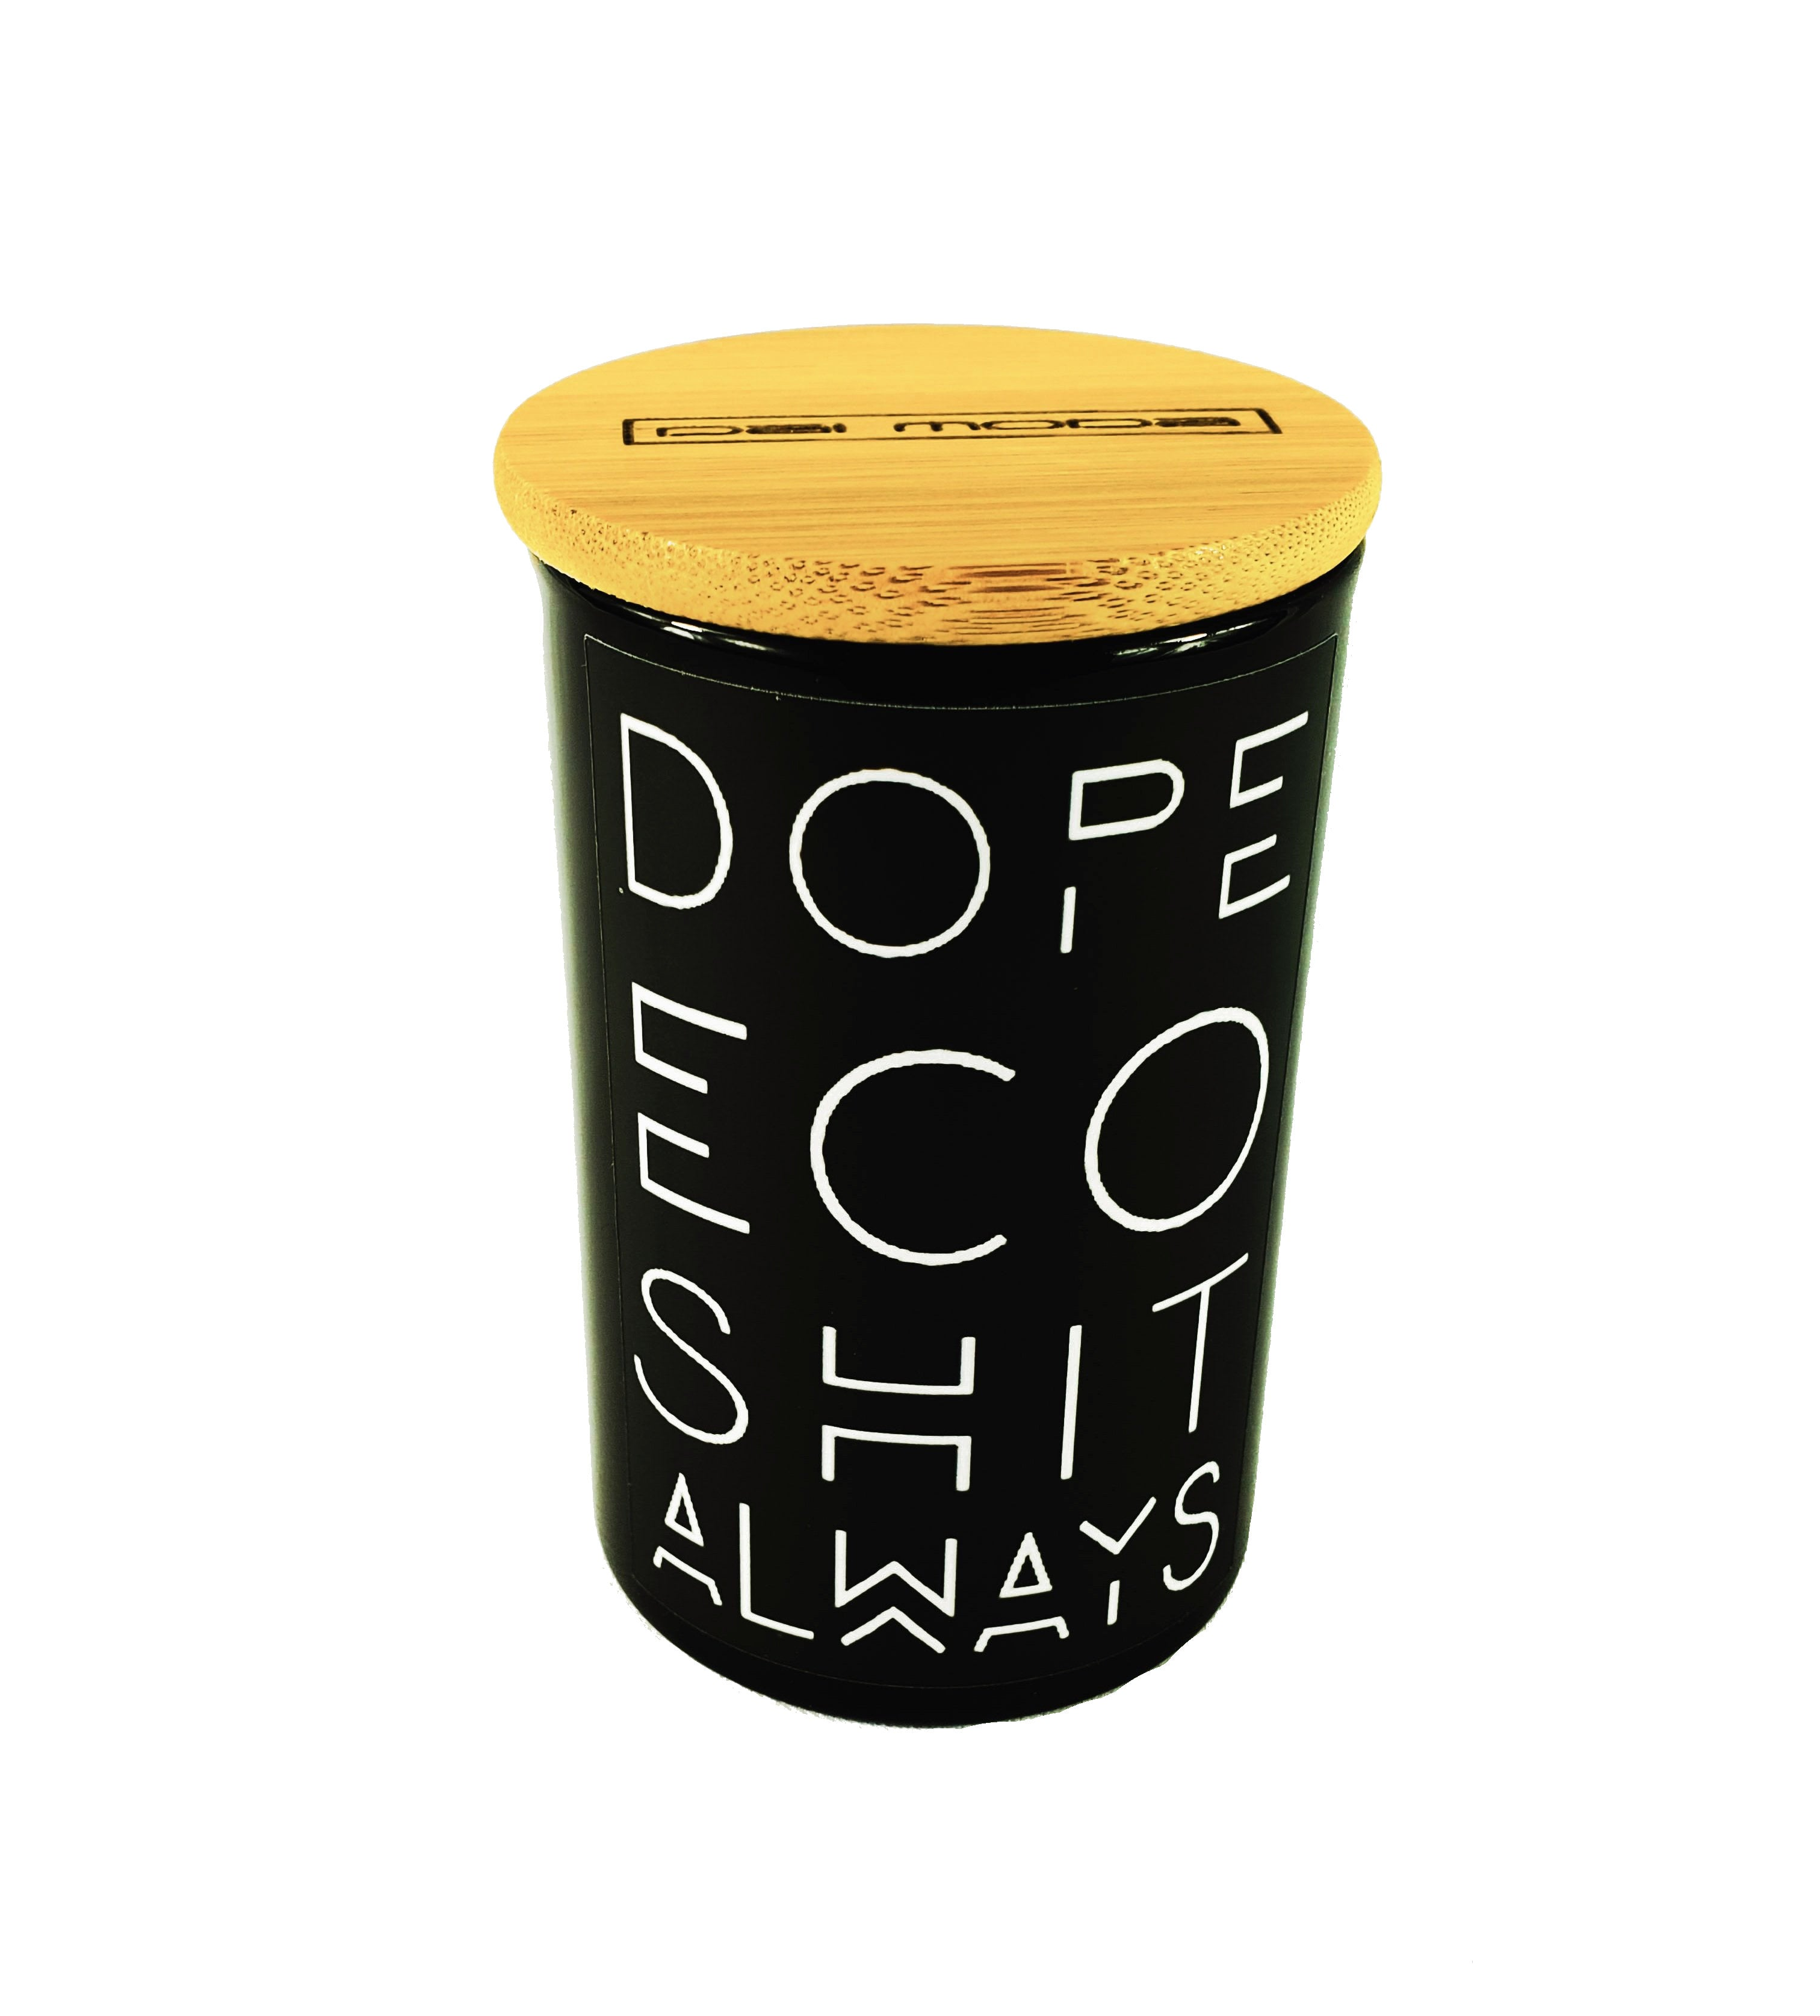 Dope Eco 8oz Candle